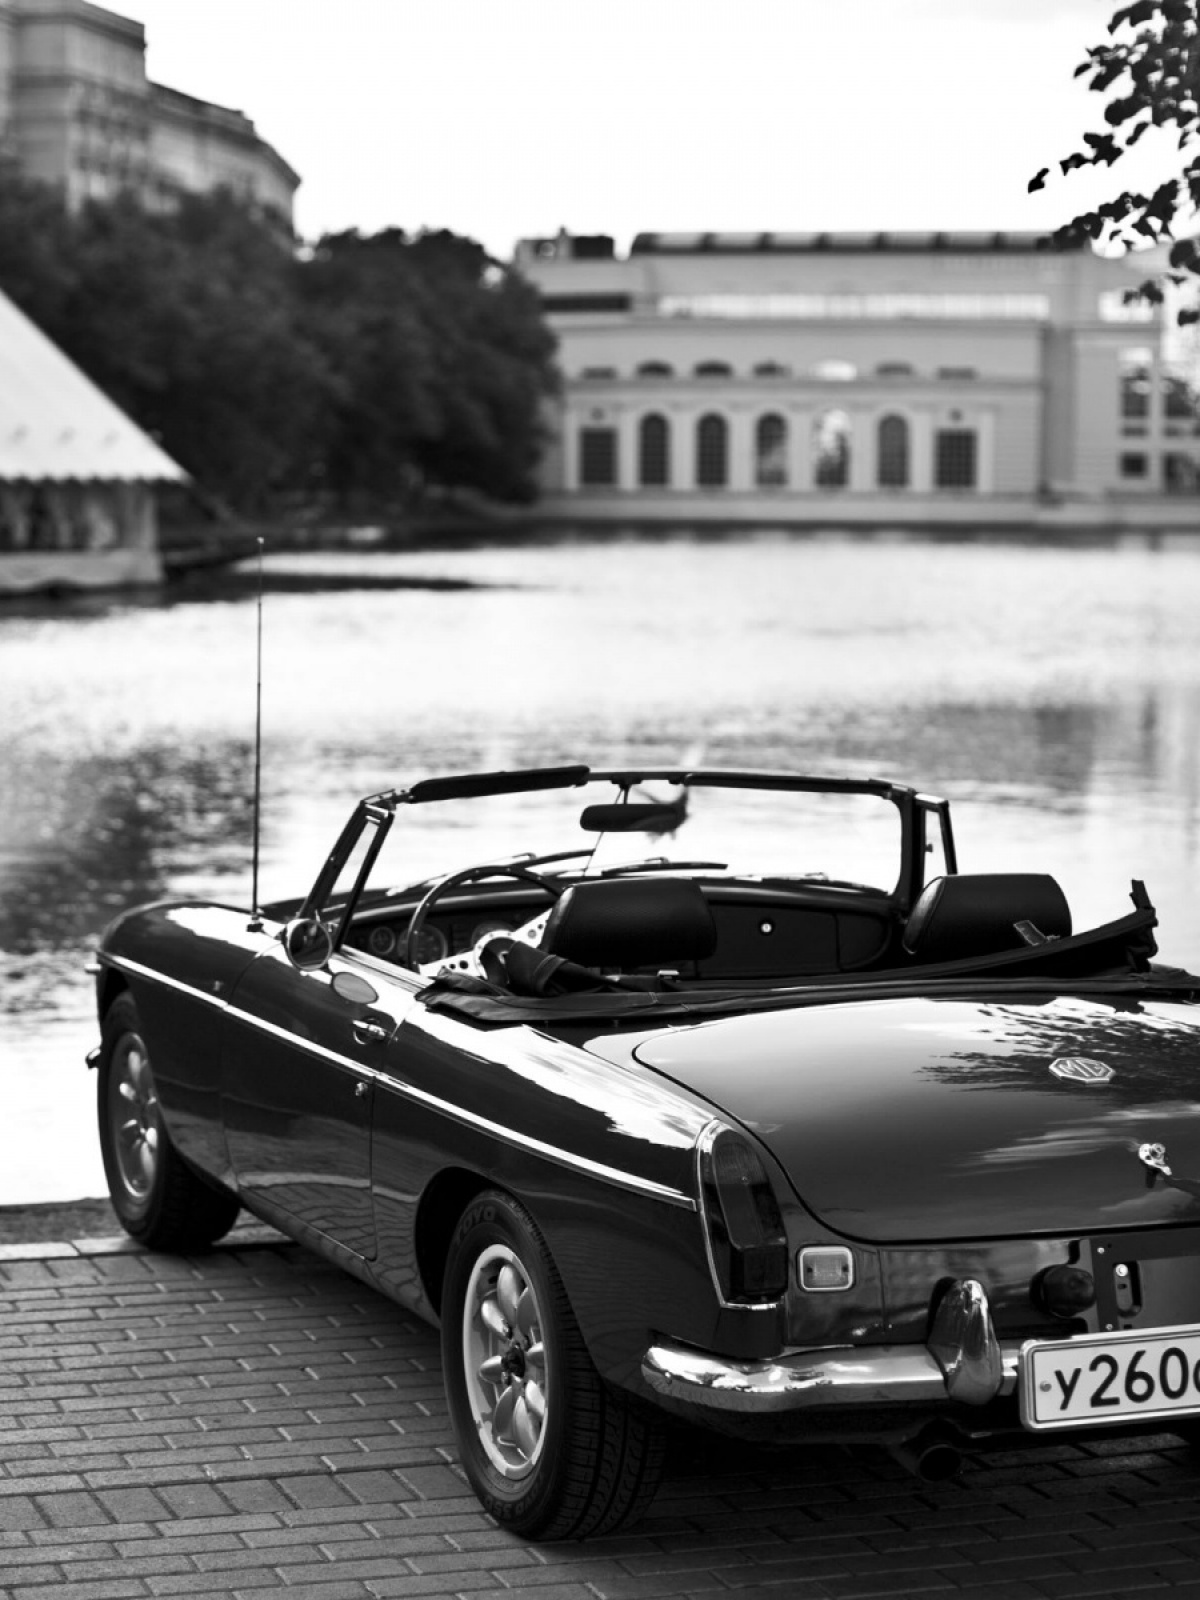 Vehicles Car Mobile Wallpaper Mobiles Wall